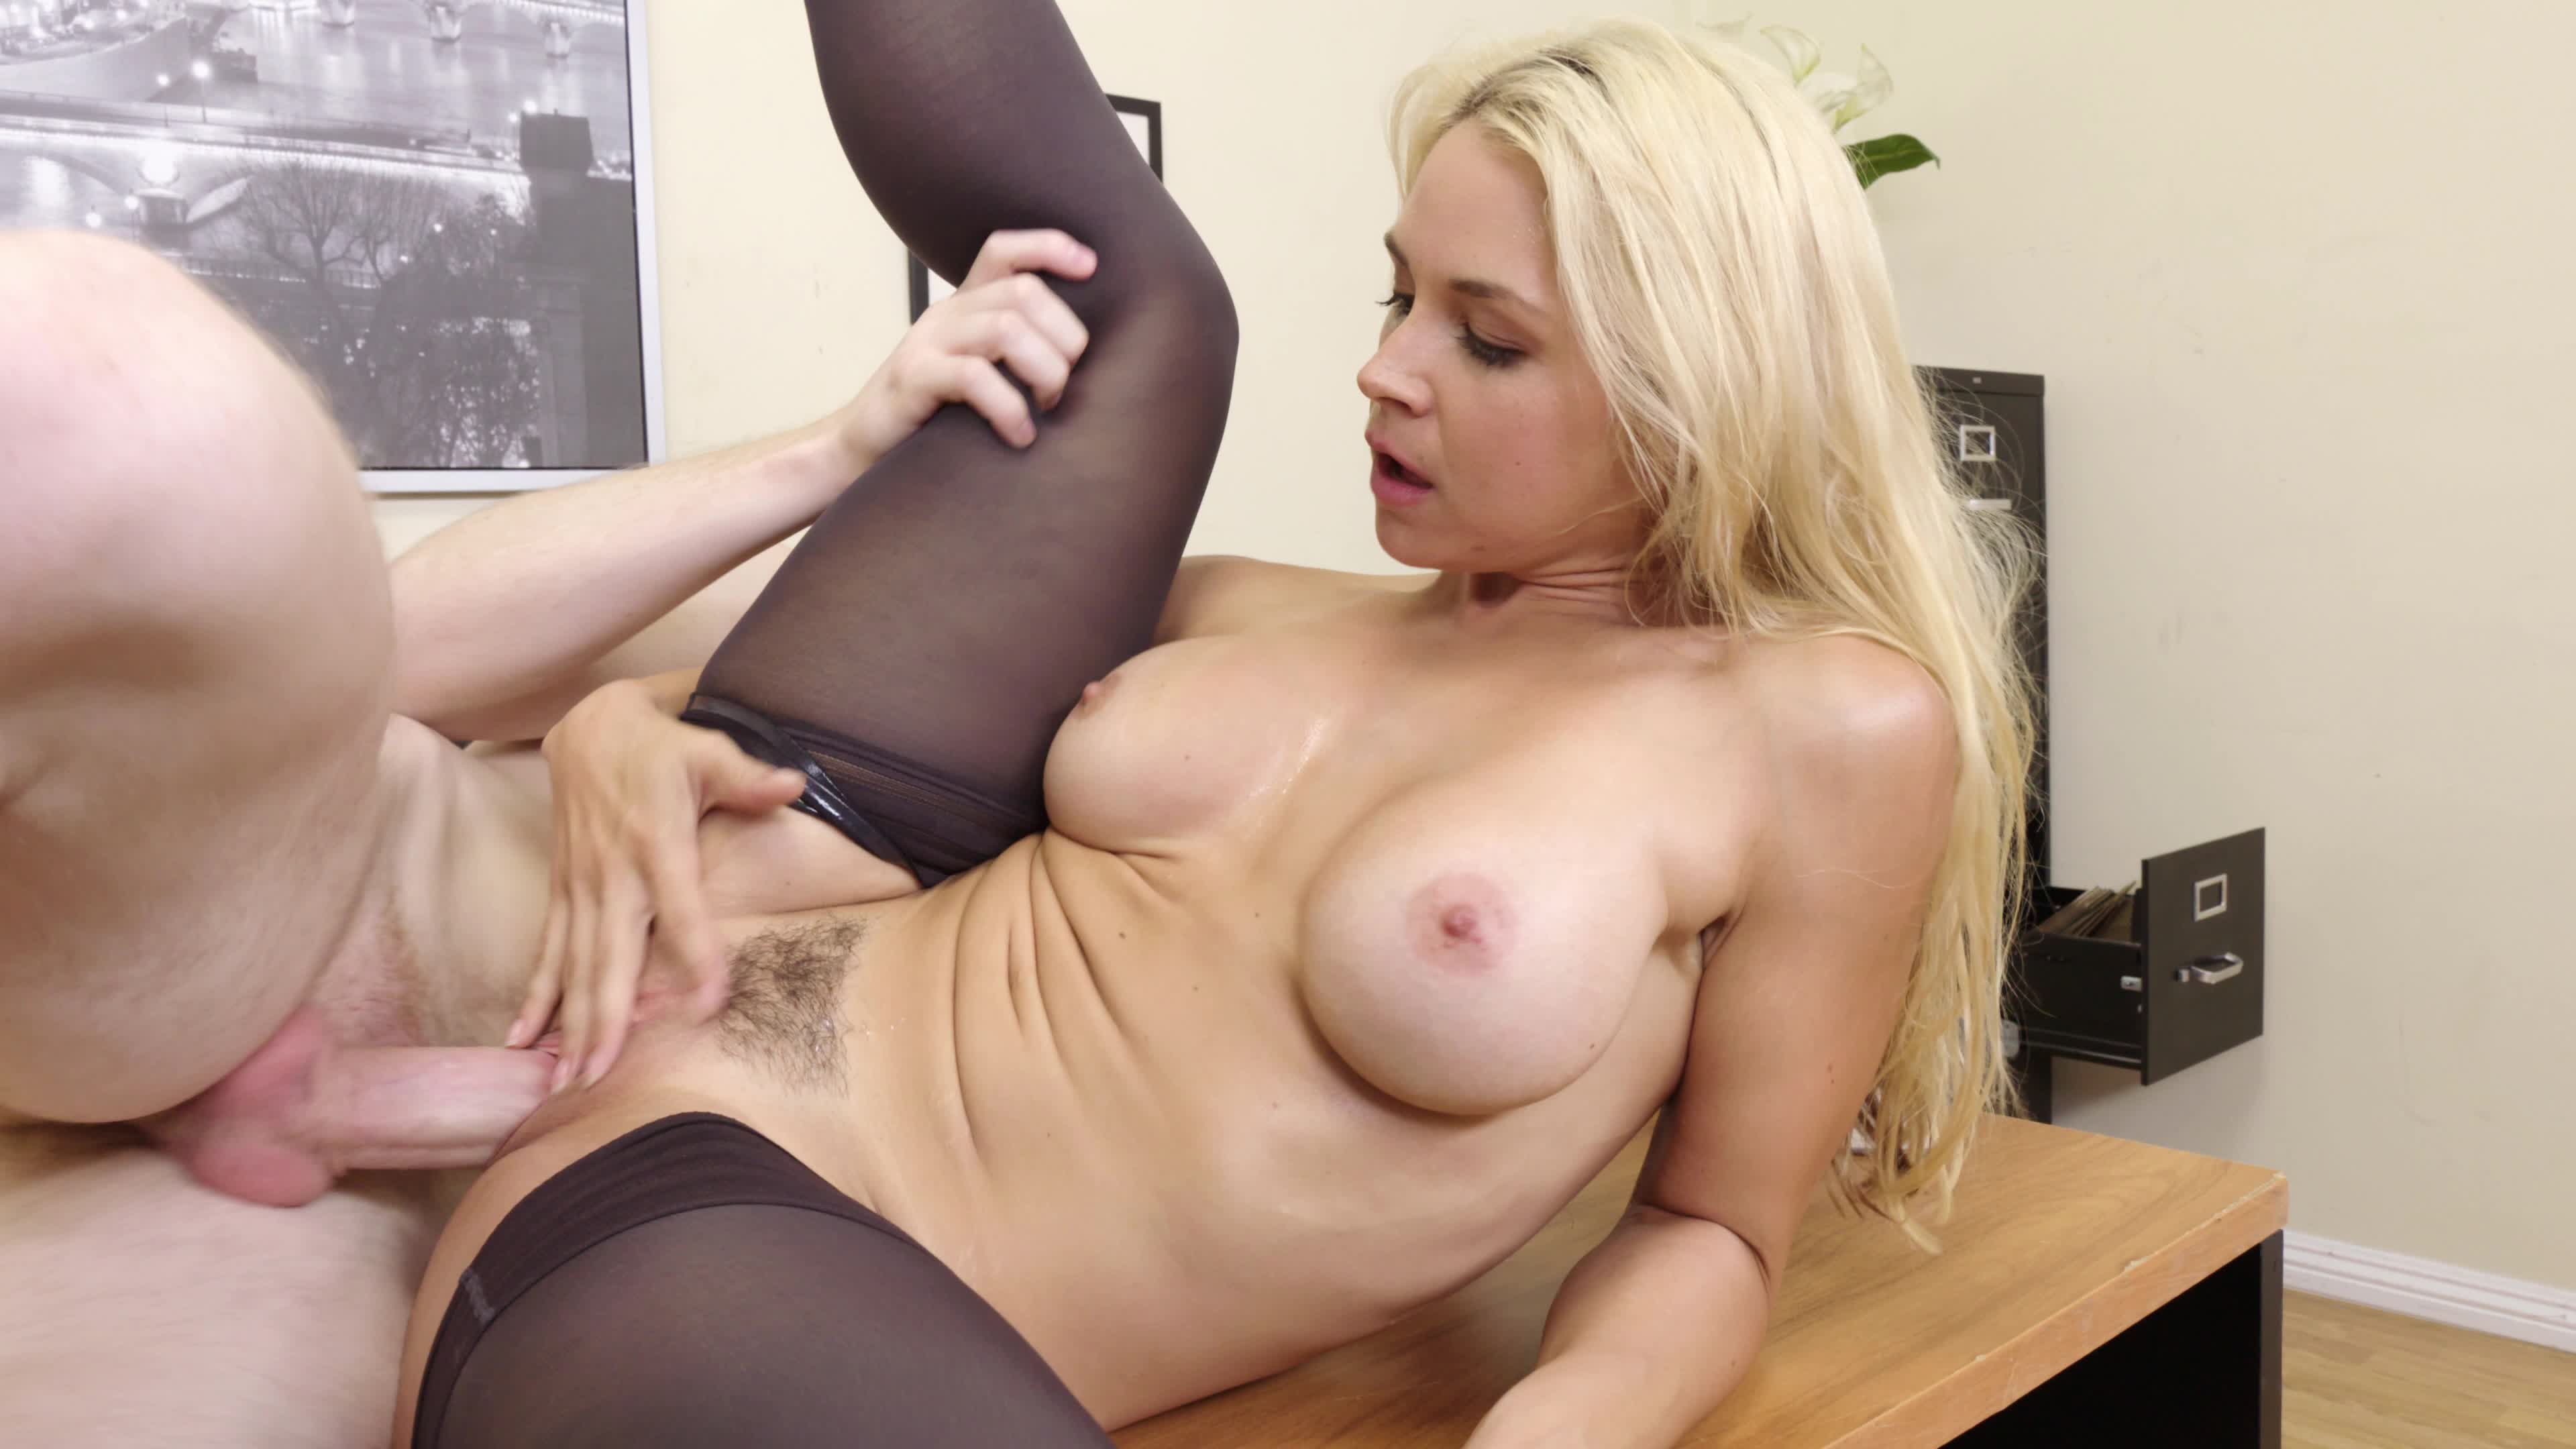 hot-blonde-milf-videos-and-hd